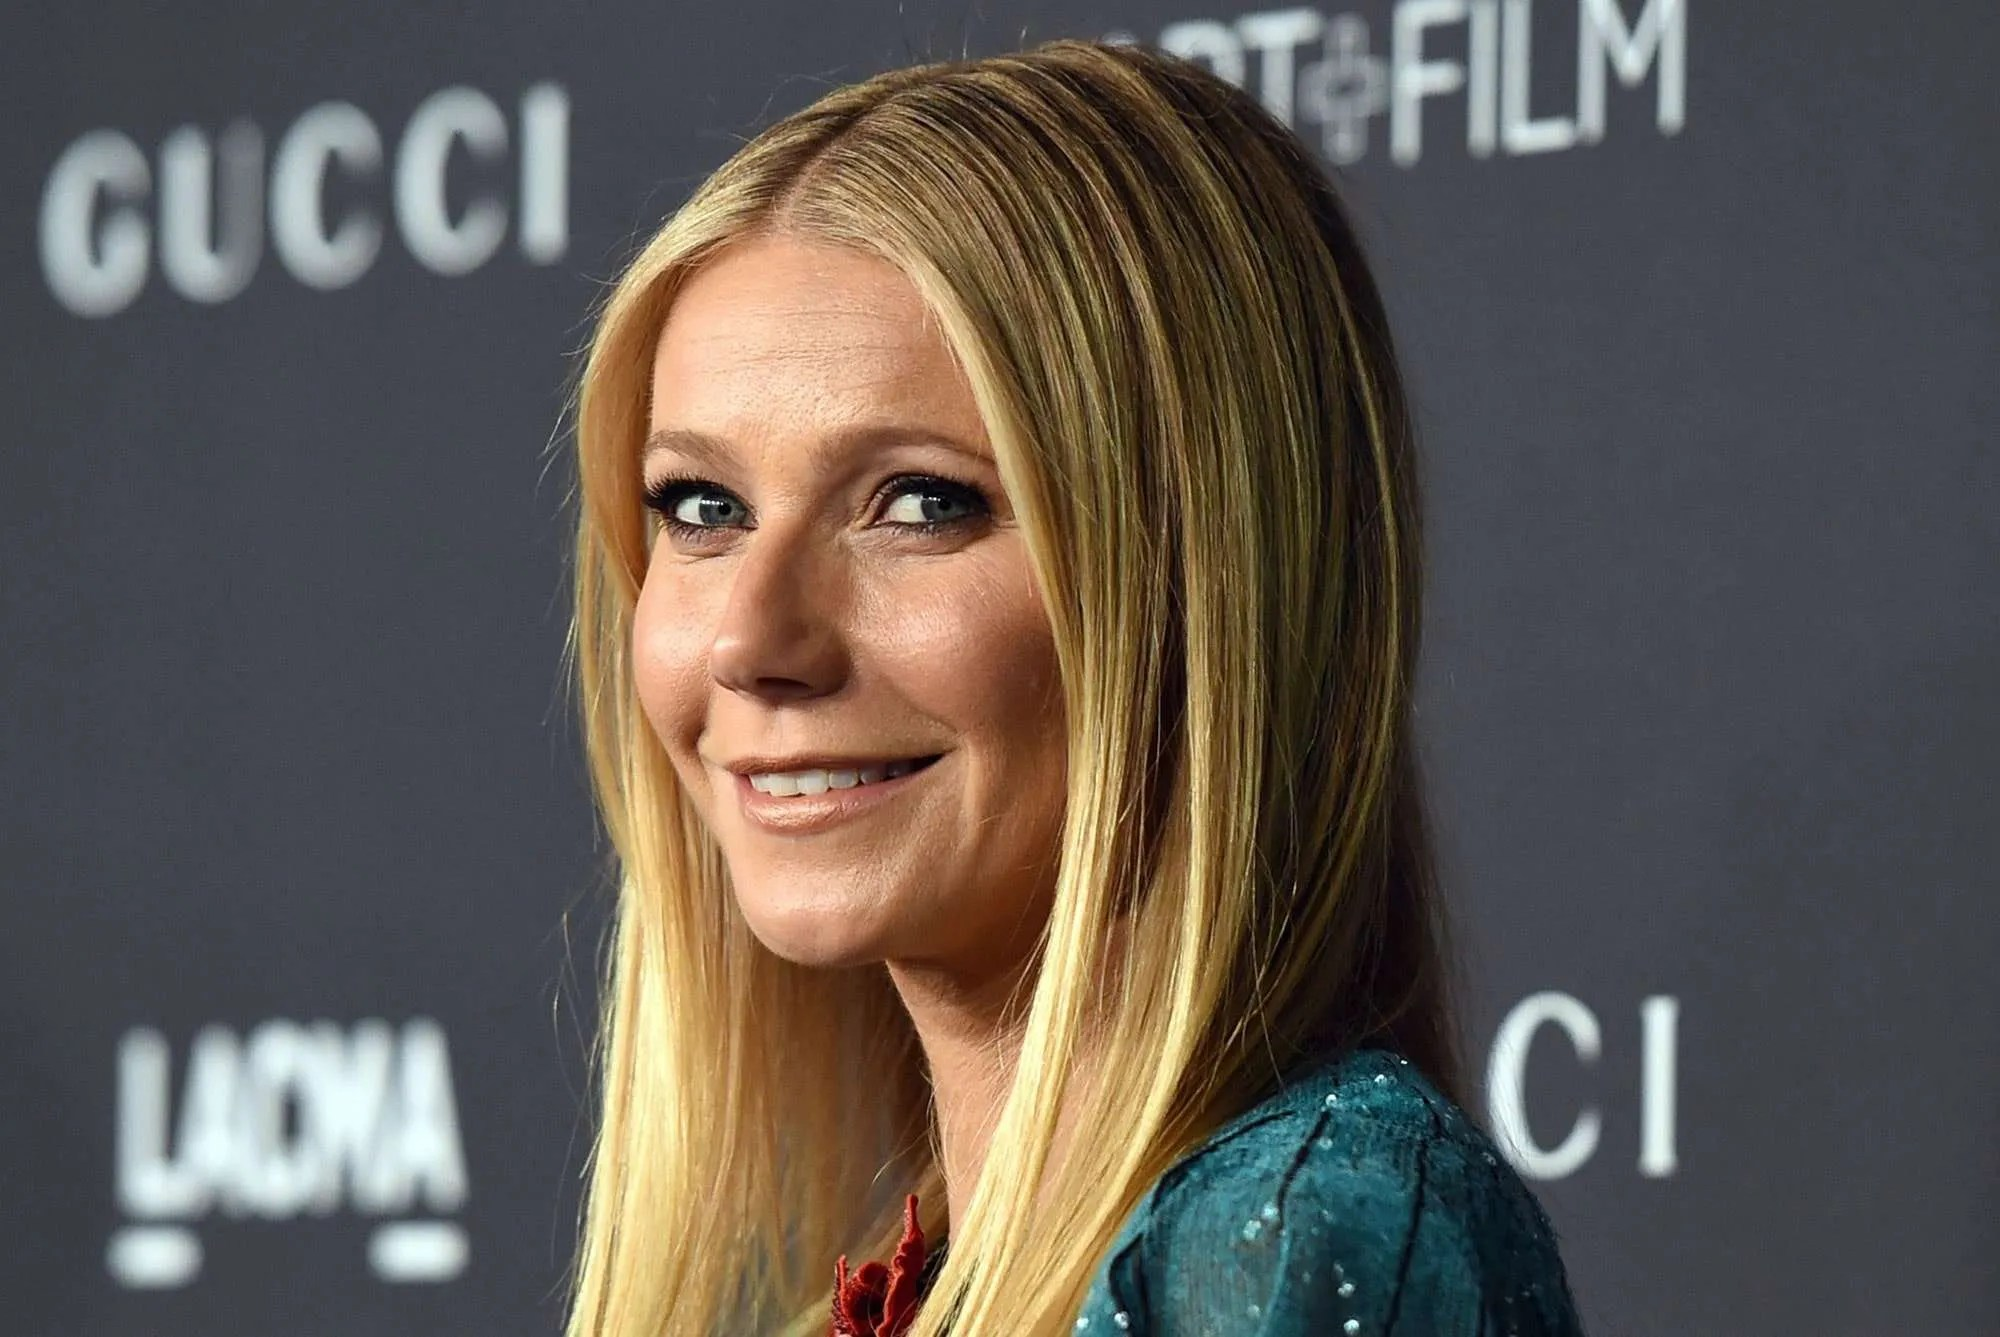 Gwyneth Paltrows Daughter Apple Reacts to Nude Birthday Post